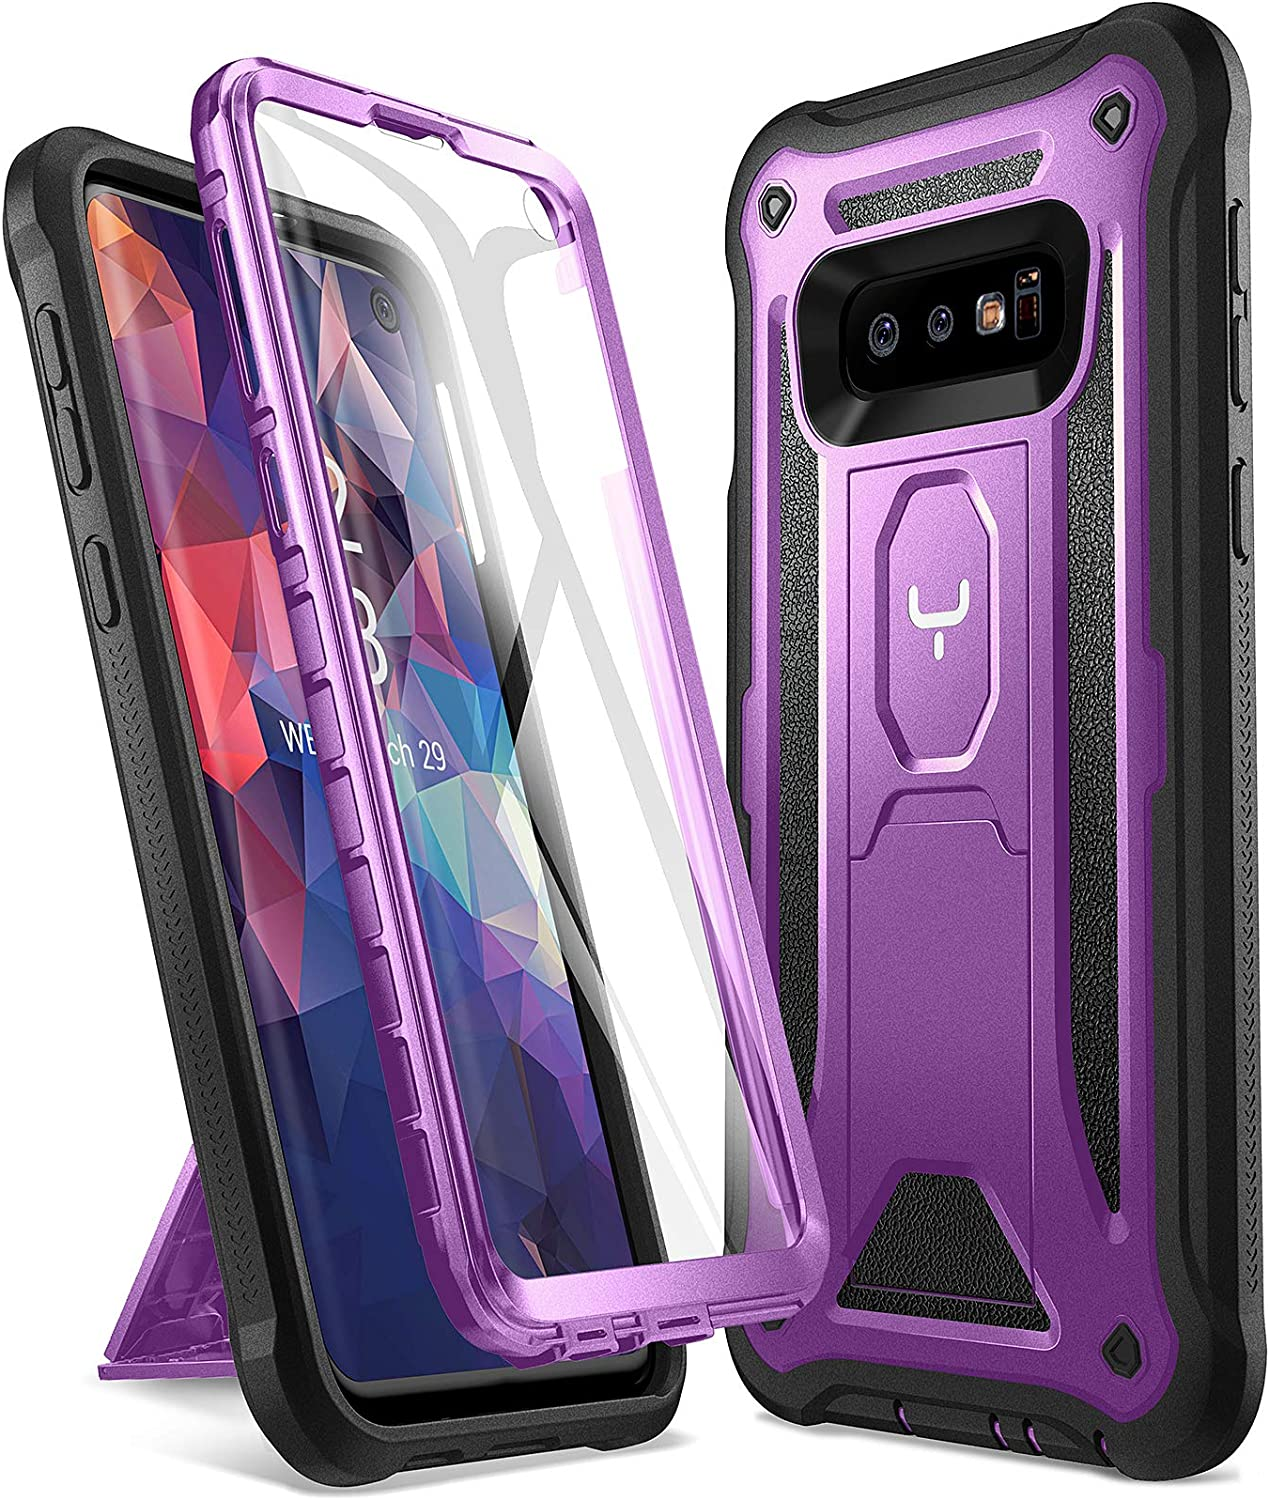 YOUMAKER Case for Galaxy S10e, Kickstand Case with Built-in Screen Protector Heavy Duty Protection Shockproof Full Body Slim Fit Cover for Samsung Galaxy S10e 5.8 inch - Purple